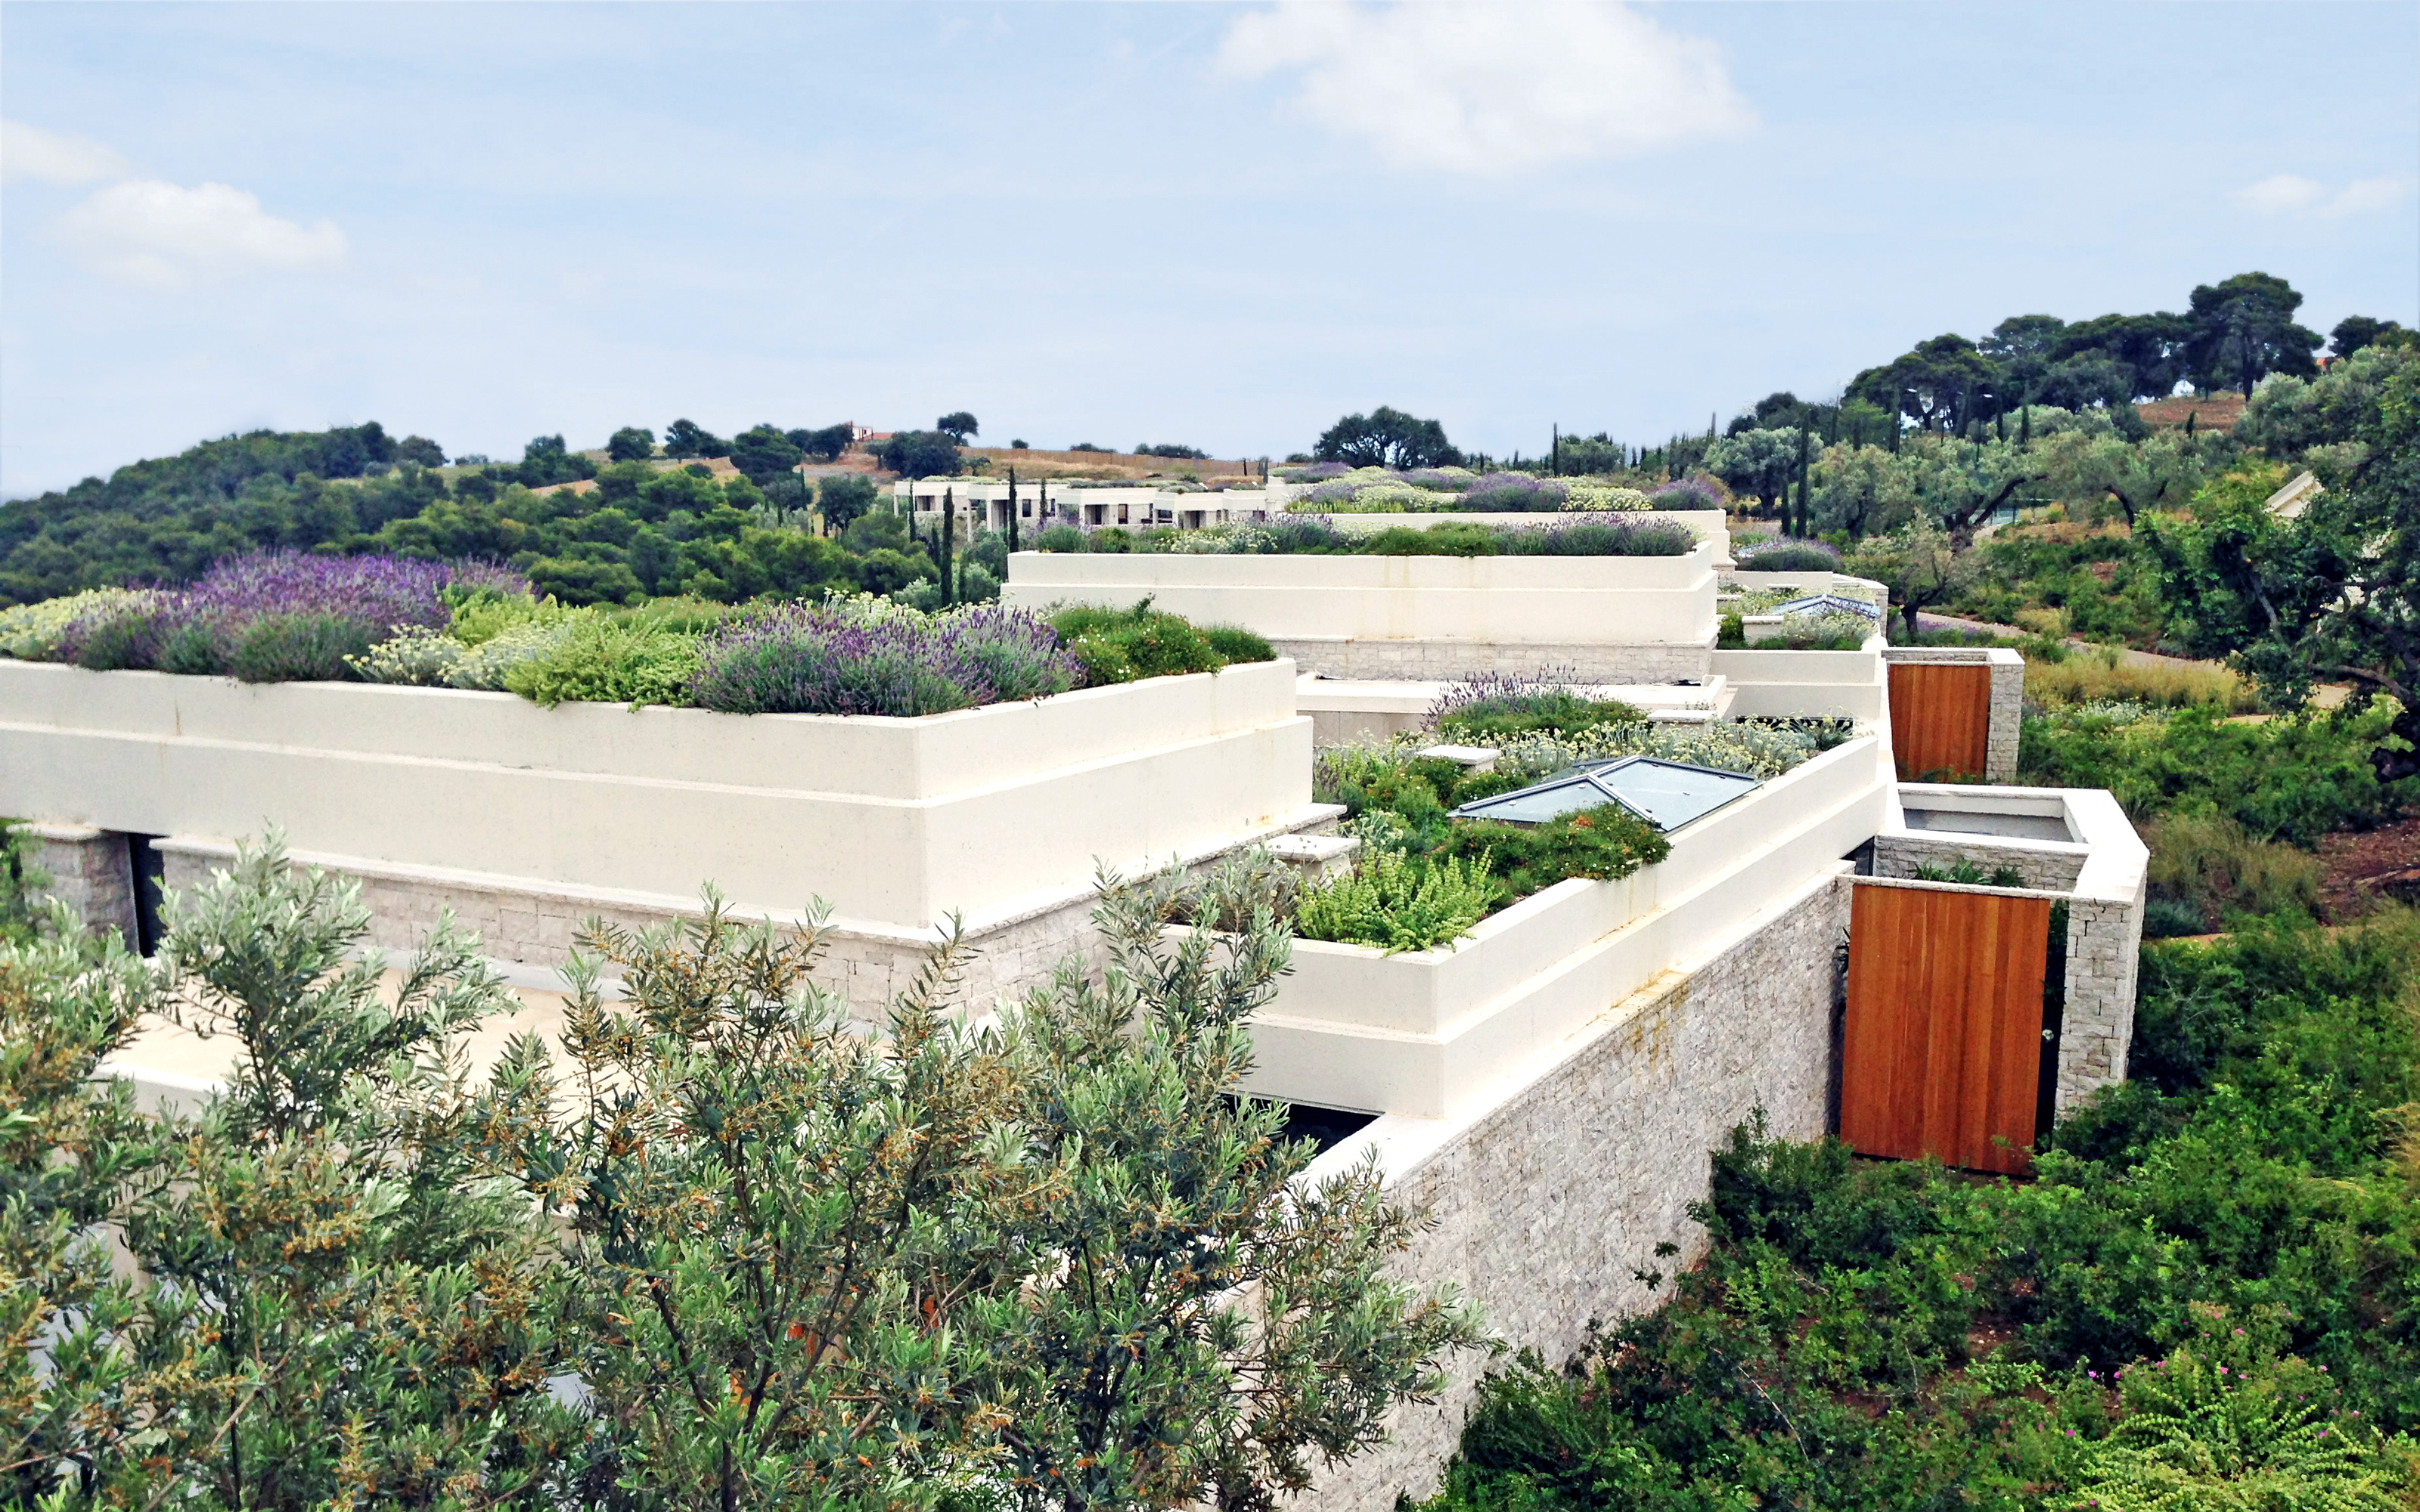 Green roofs with herbs on stone houses